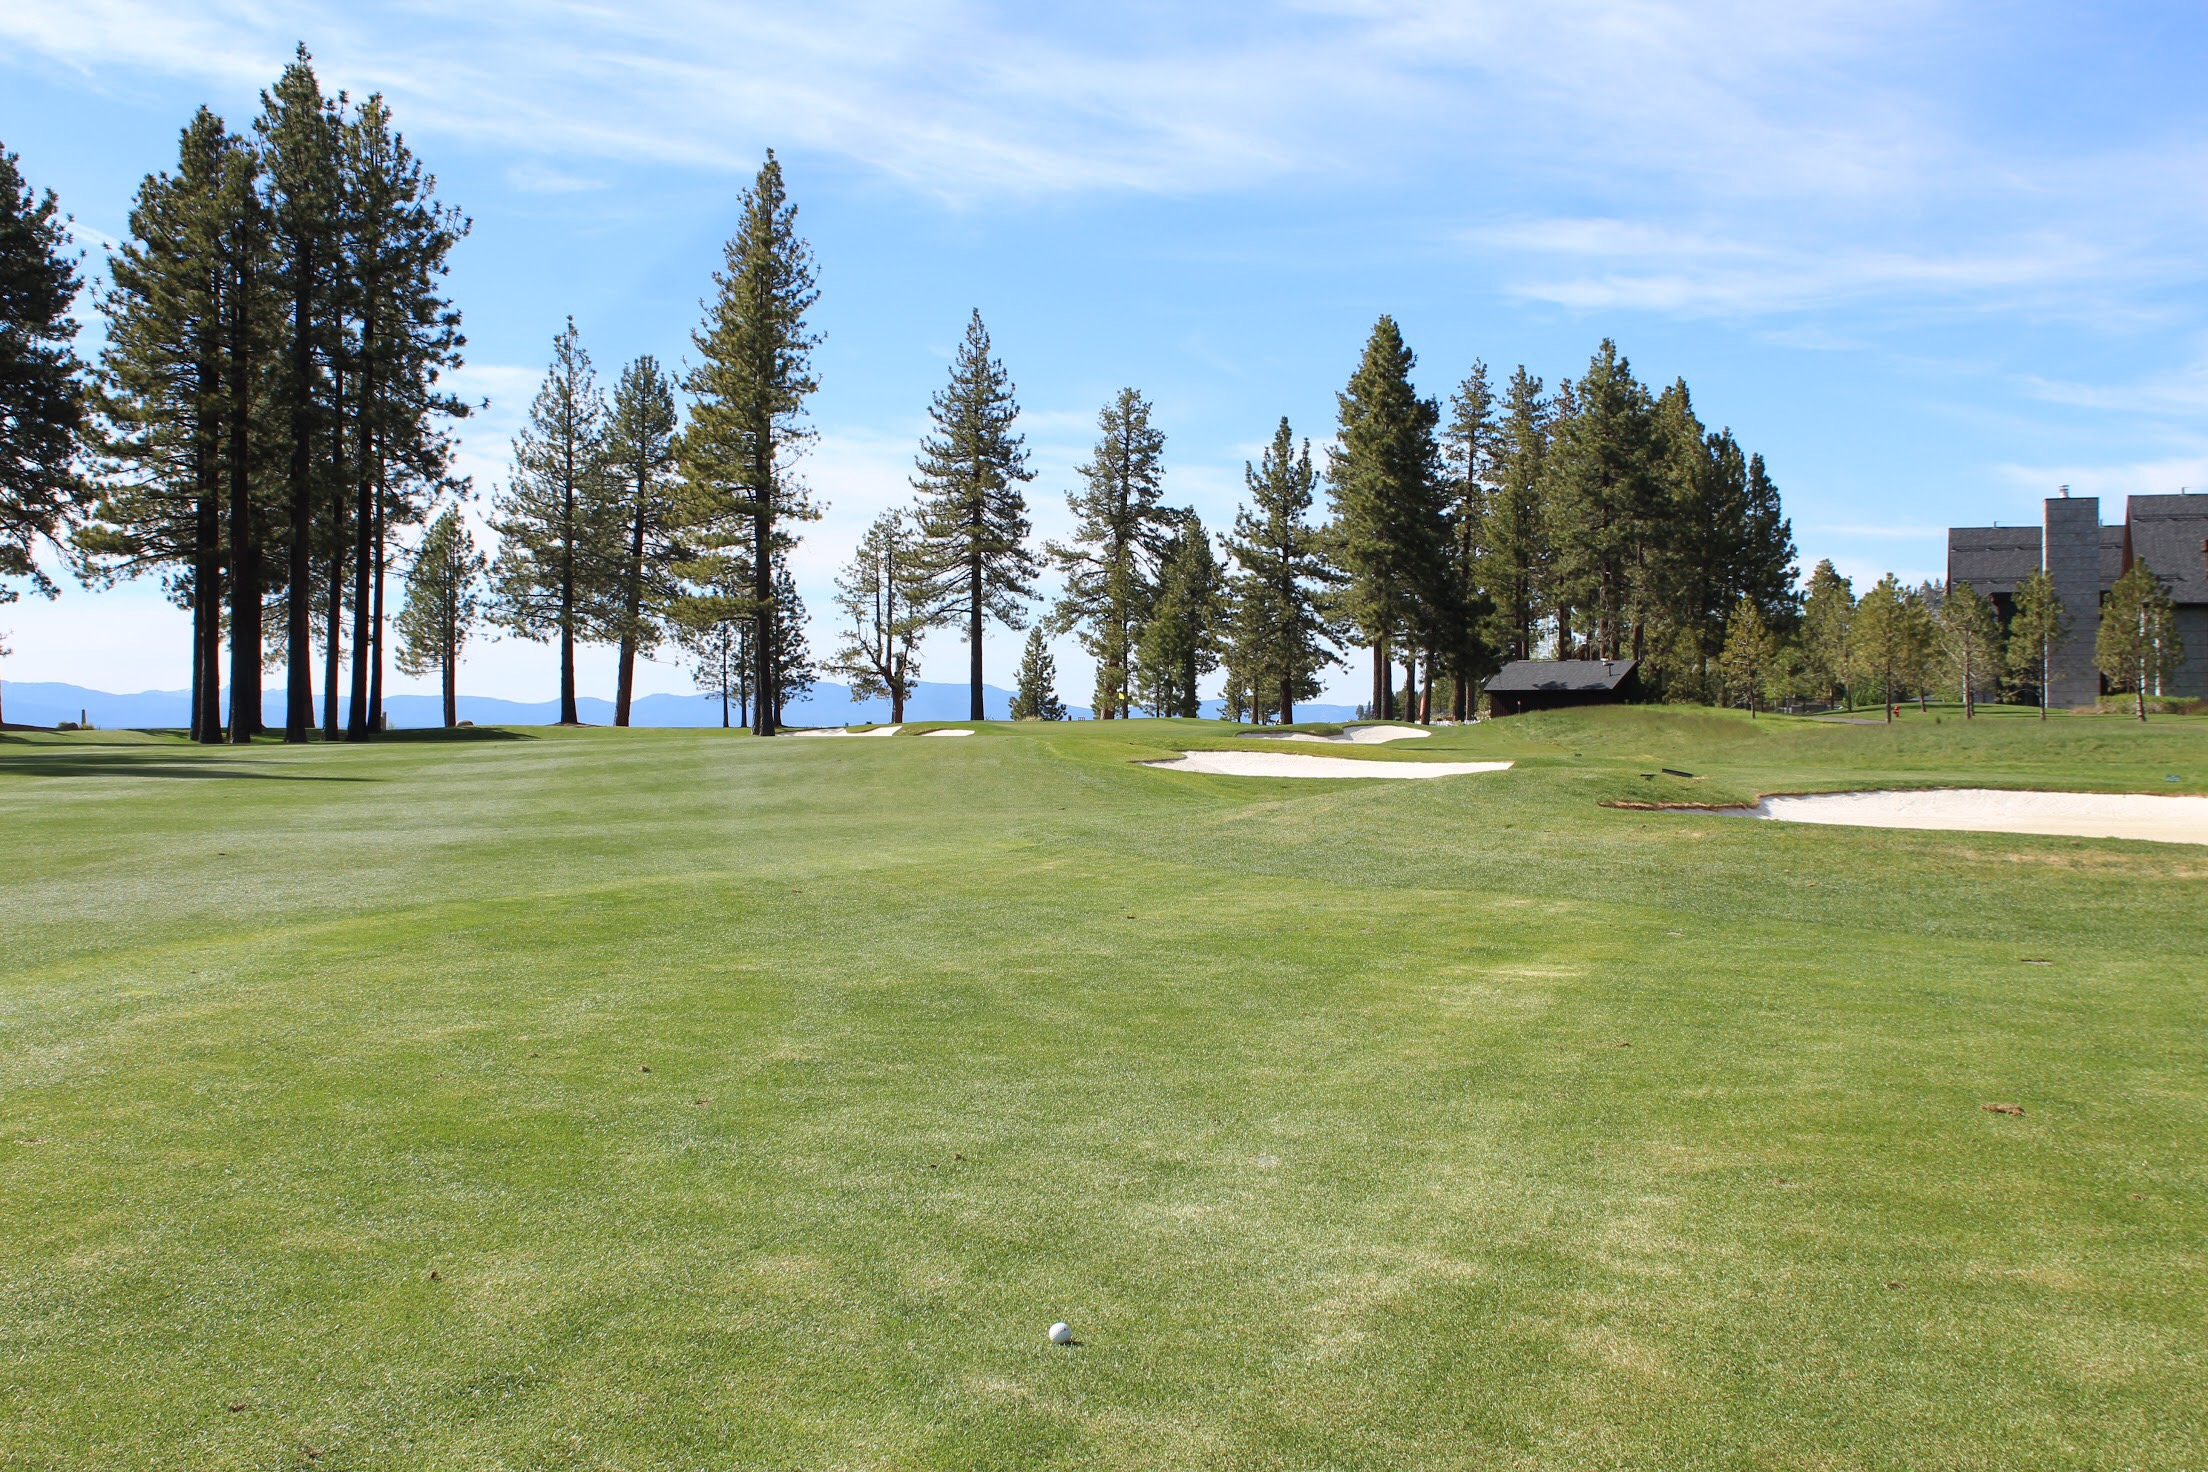 Newly renovated #9 is now along the water where the old parking lot used to be! The Lodge takes up the area that #9 used to be on. It makes for a way prettier hole now!